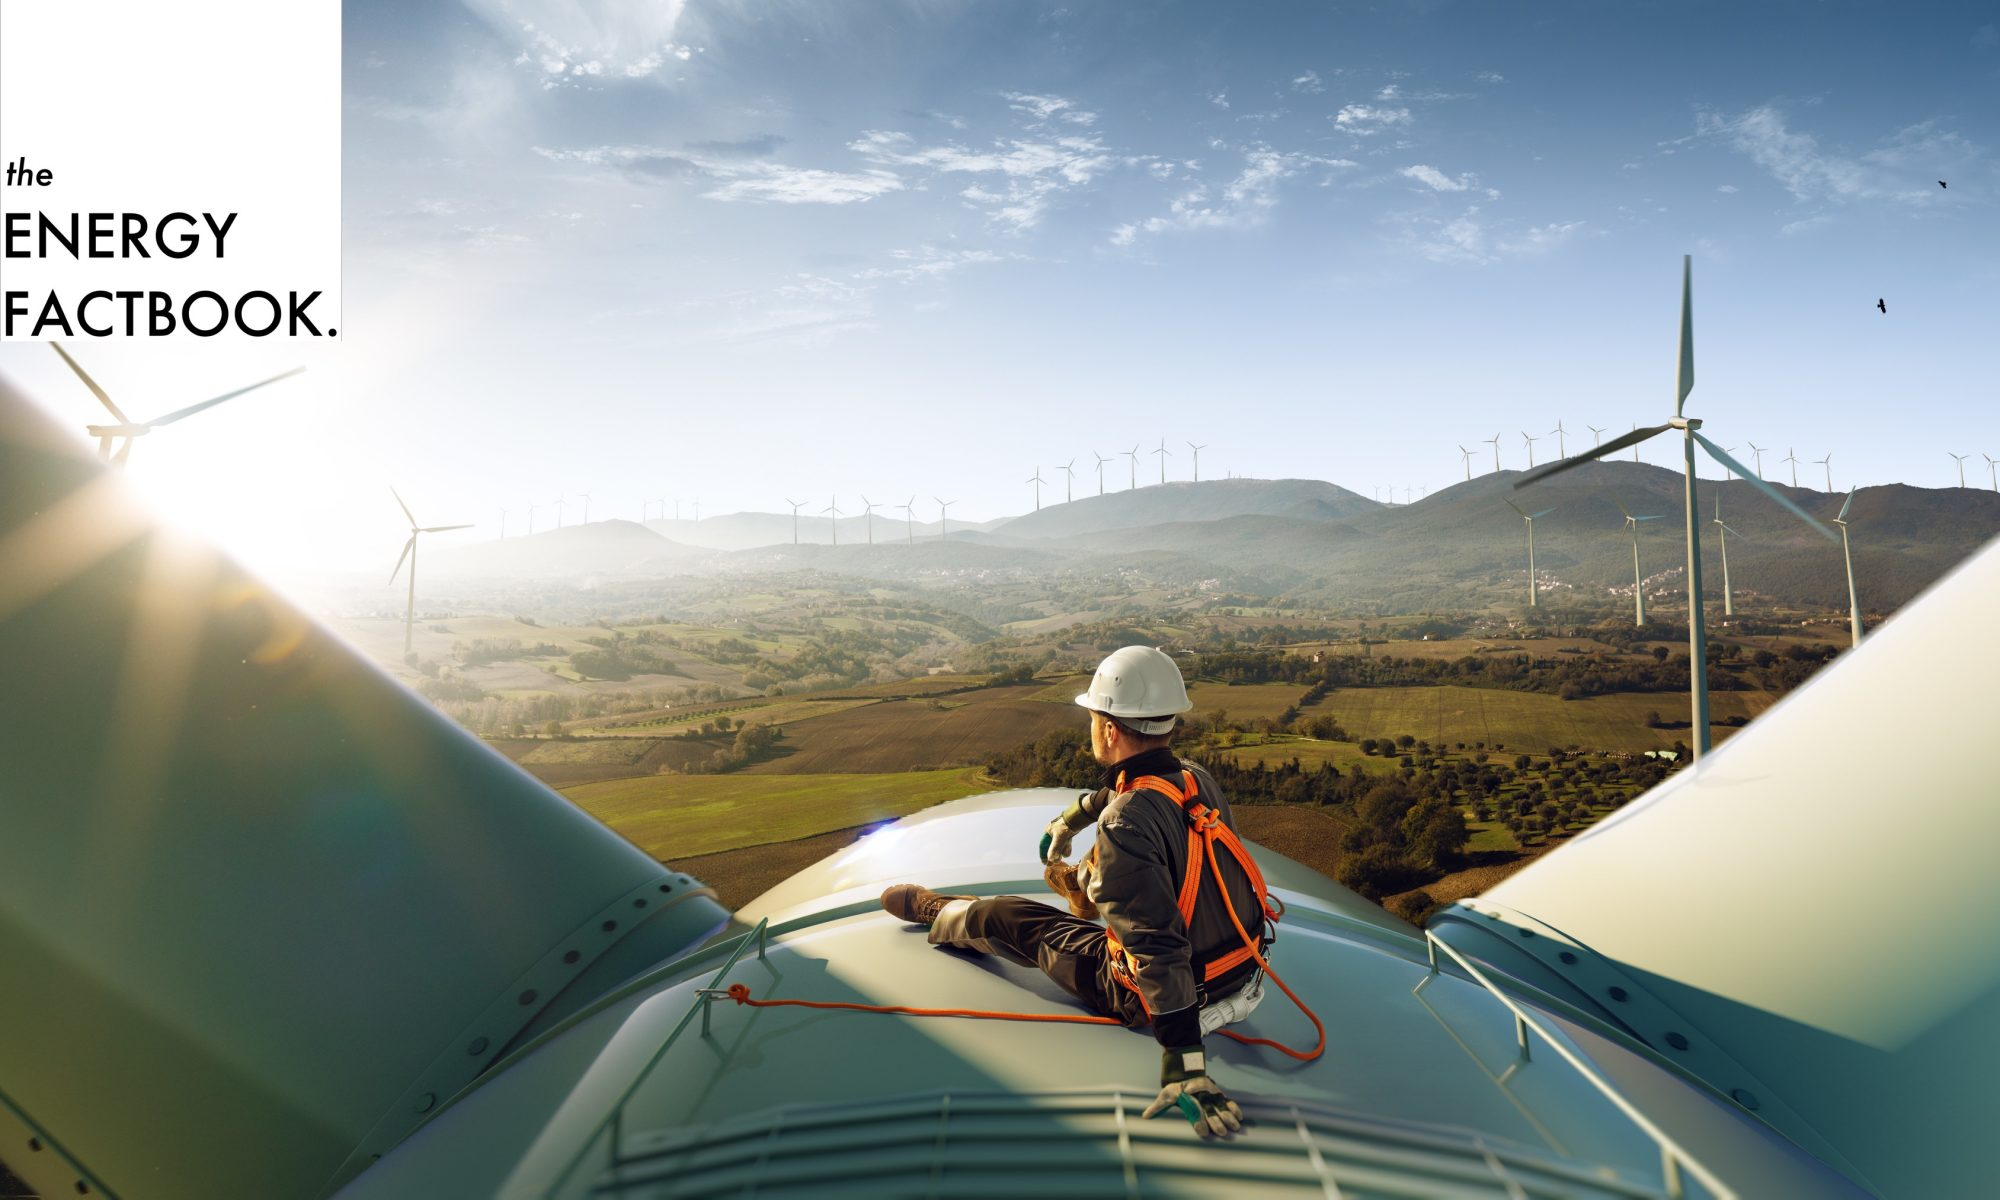 FUELING THE WORLD WITH ENERGY FACTS